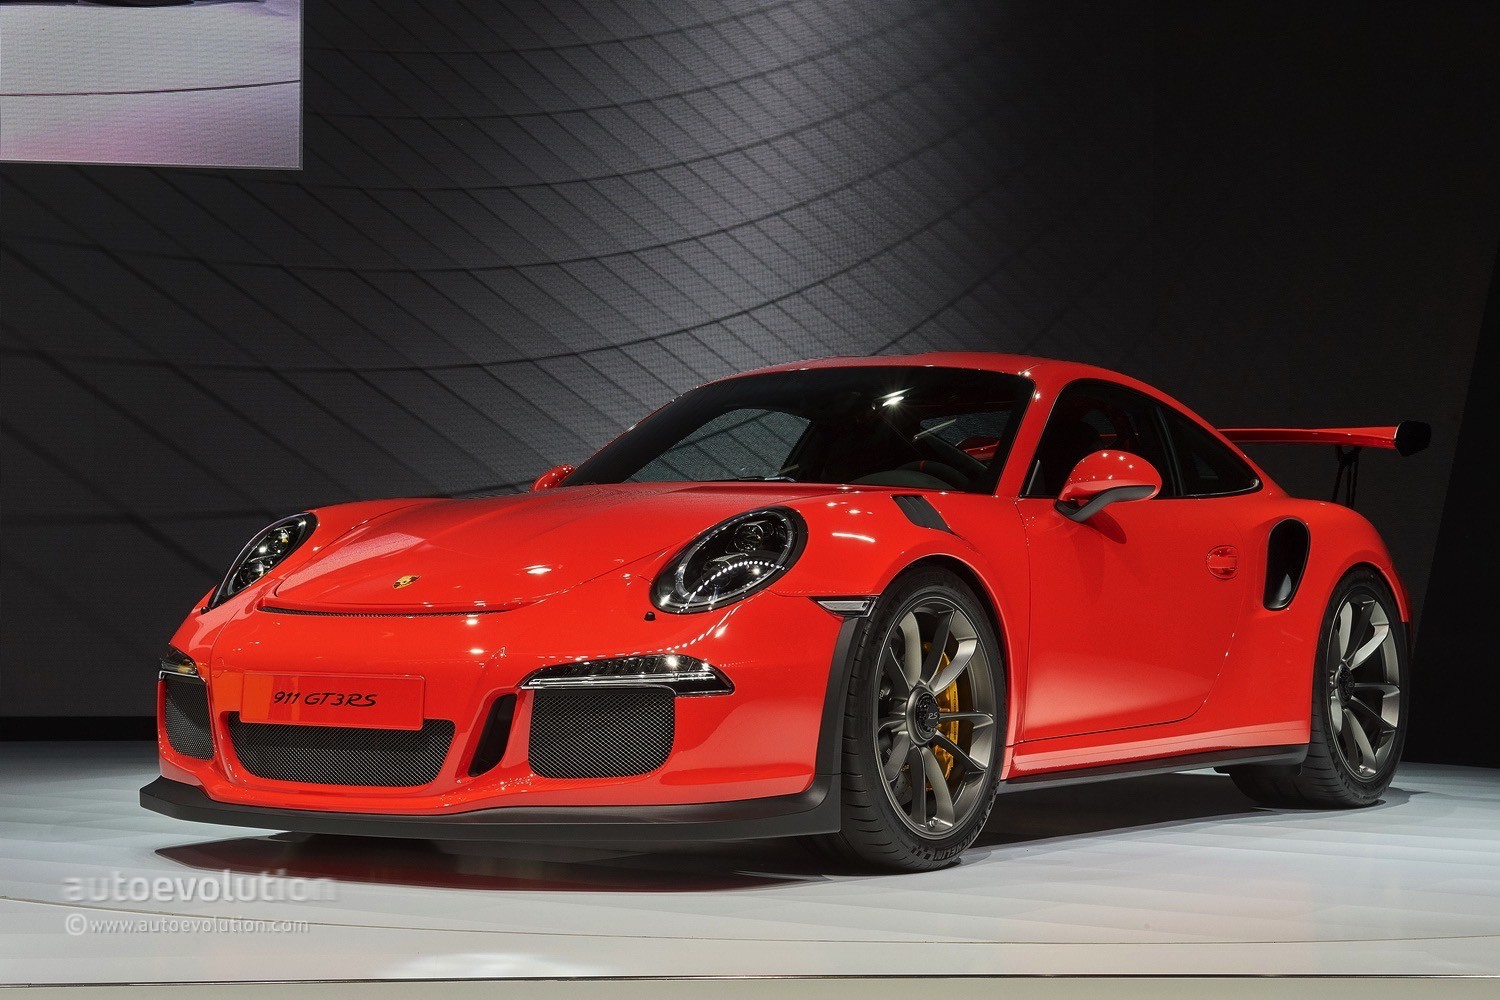 porsche 911 gt3 rs is the supermodel of race cars in geneva autoevolution. Black Bedroom Furniture Sets. Home Design Ideas